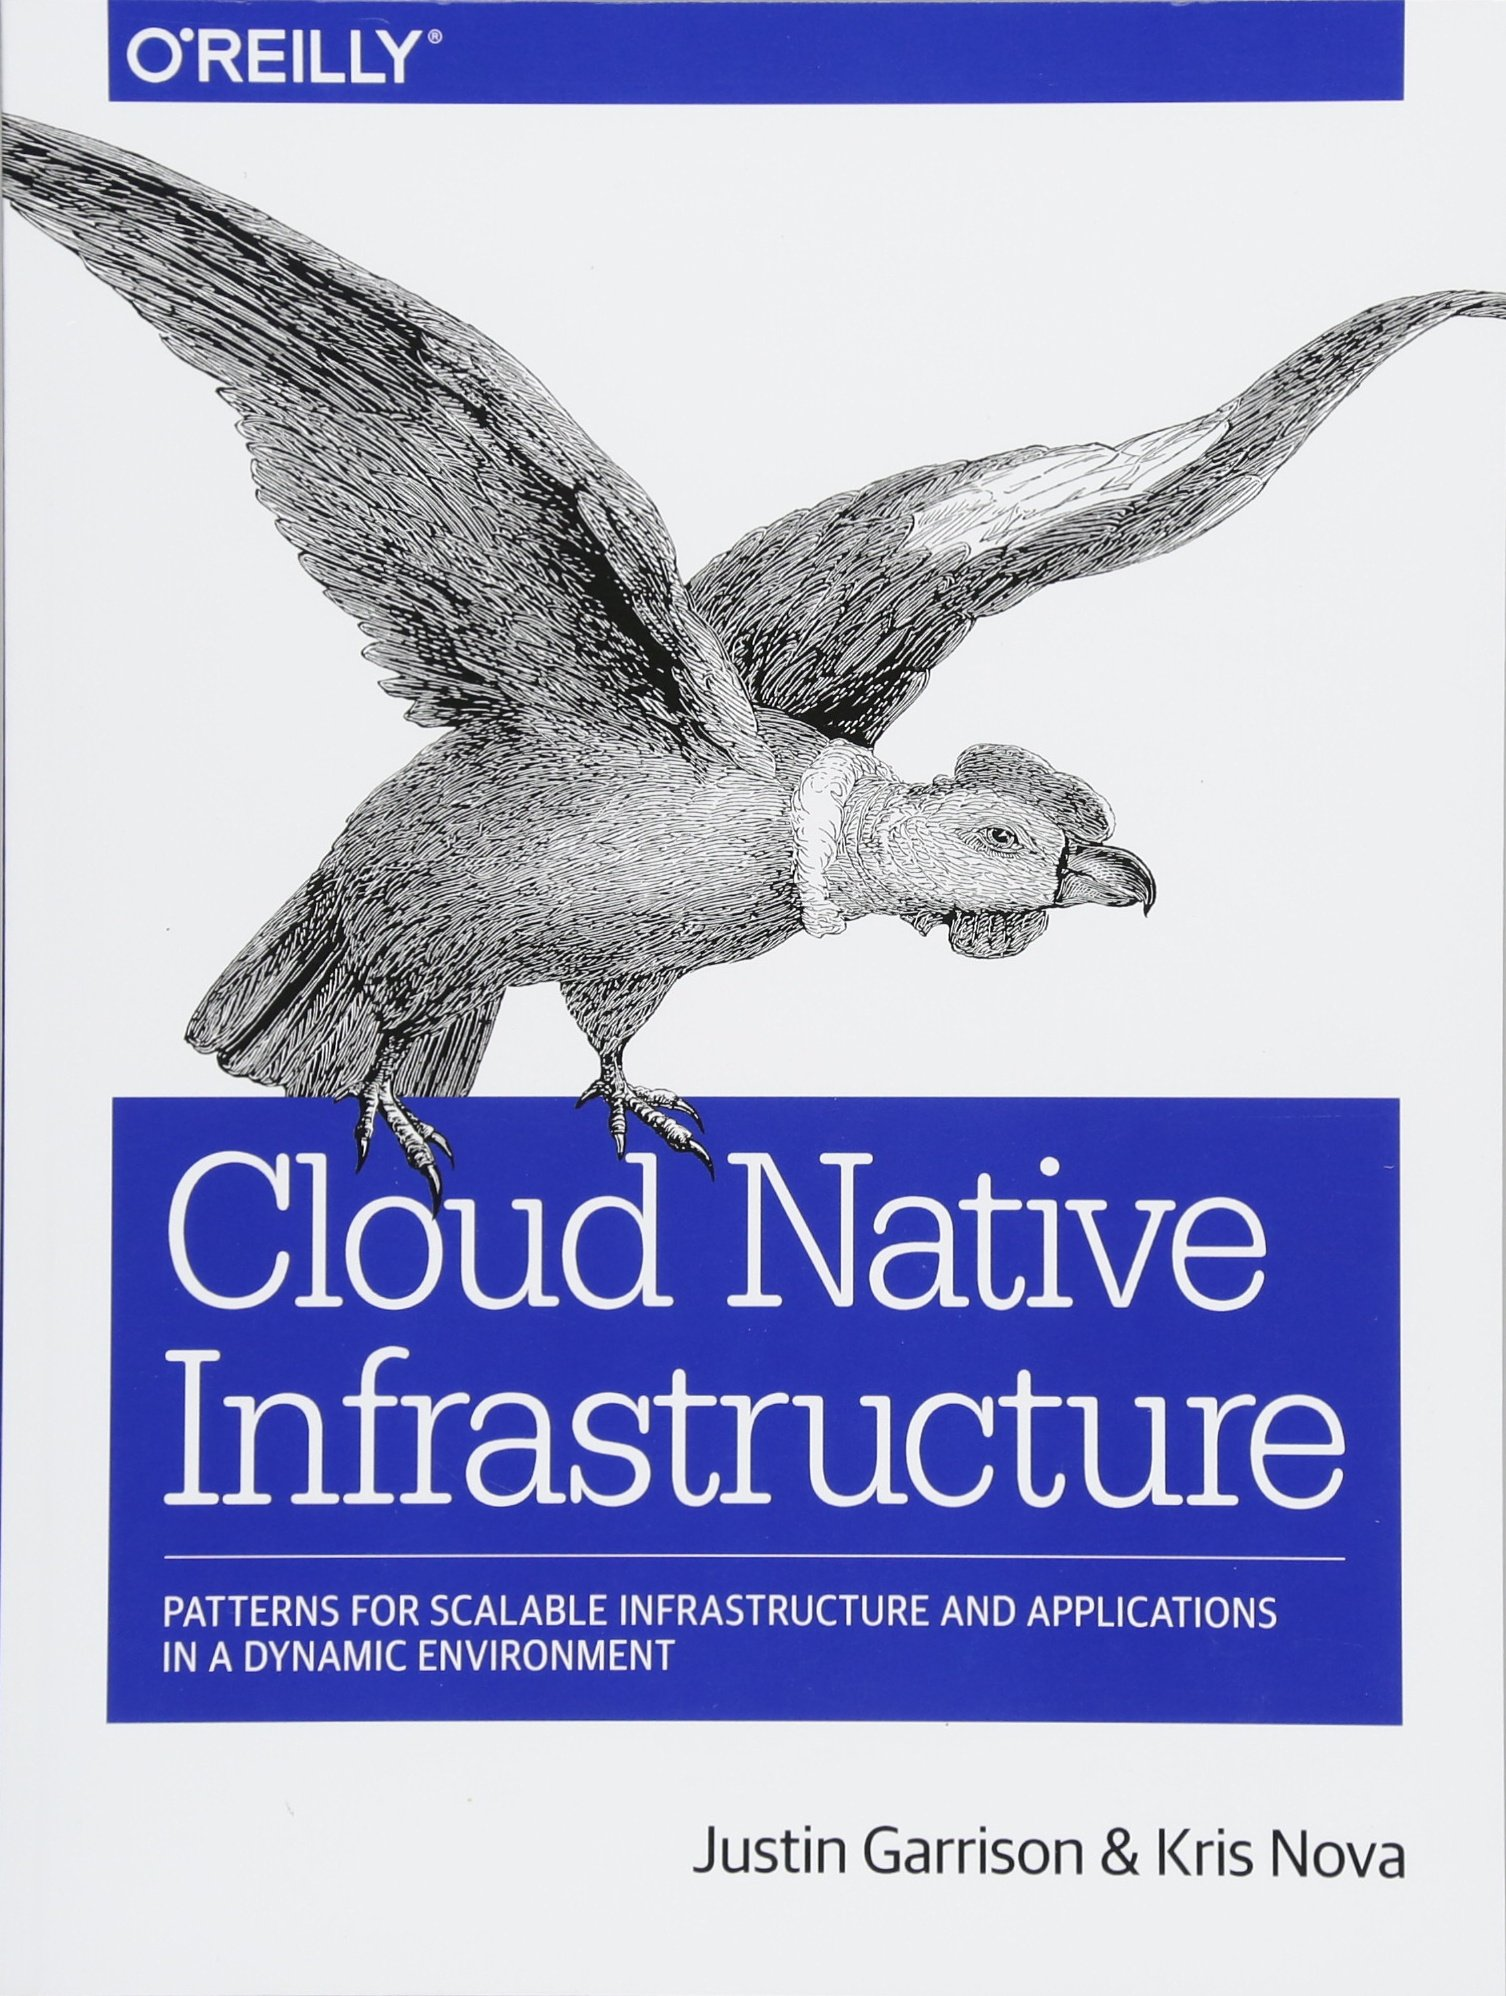 Image OfCloud Native Infrastructure: Patterns For Scalable Infrastructure And Applications In A Dynamic Environment